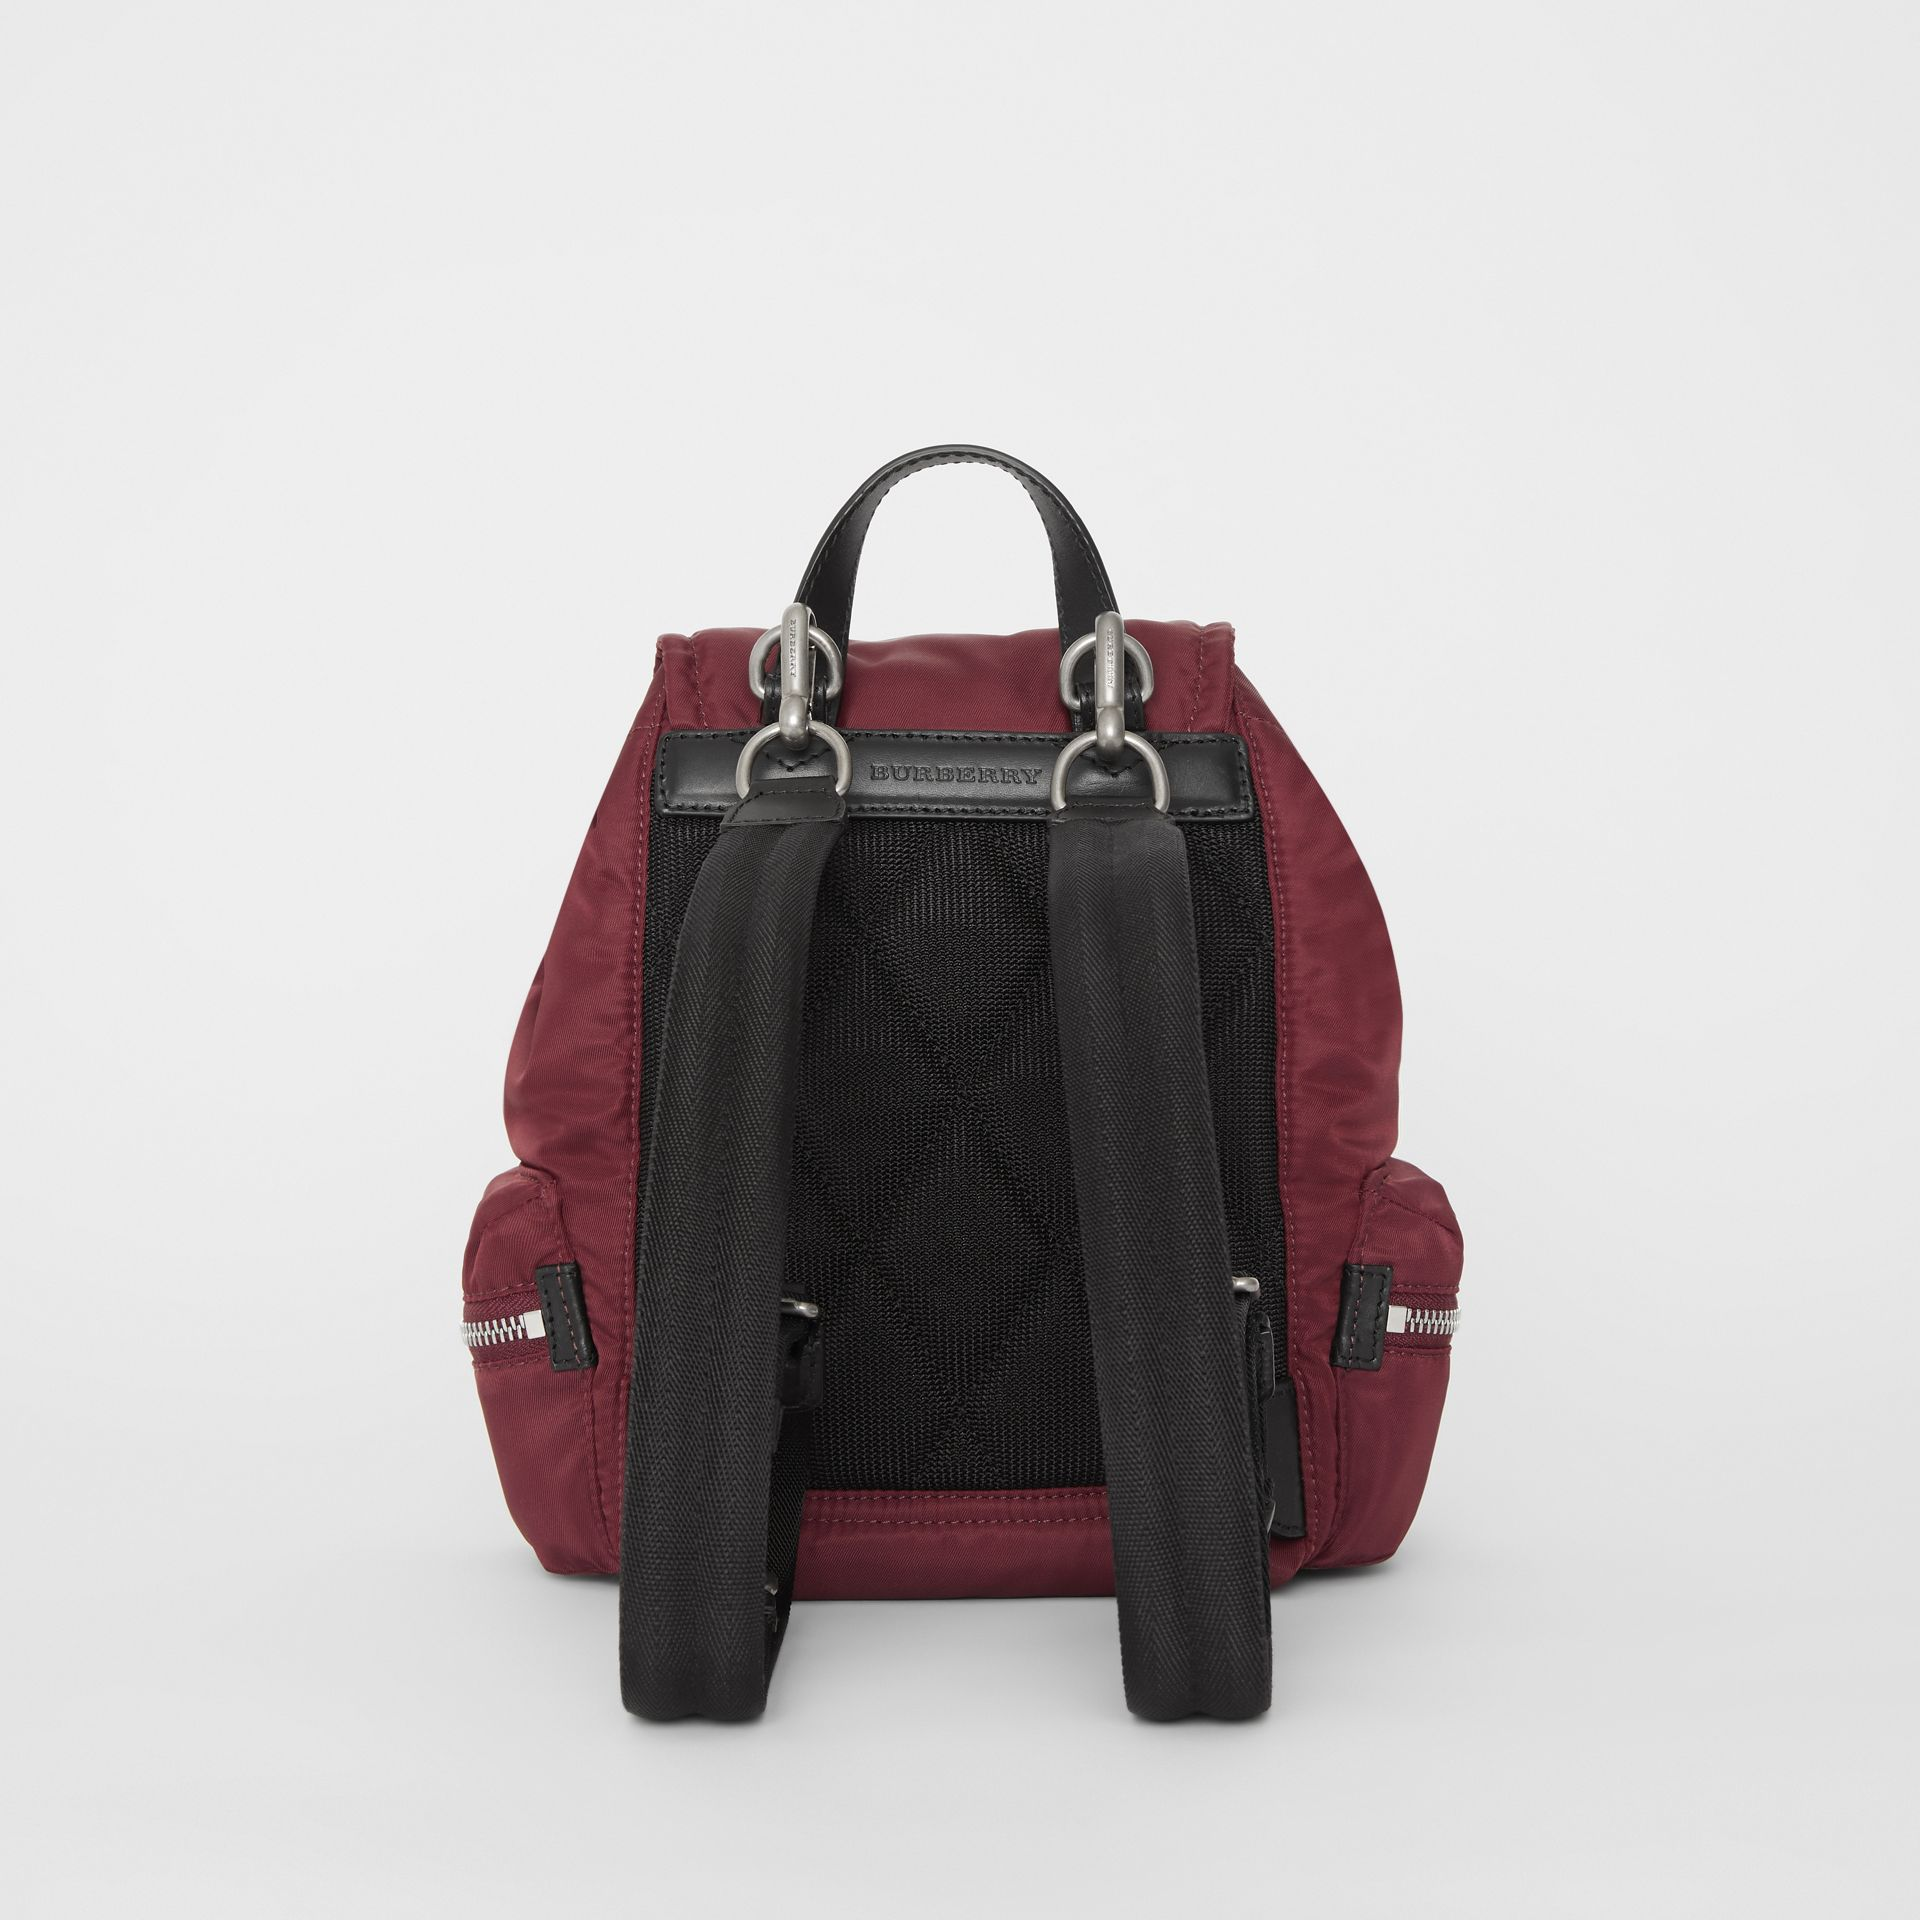 The Small Crossbody Rucksack in Puffer Nylon in Burgundy Red - Women | Burberry - gallery image 5